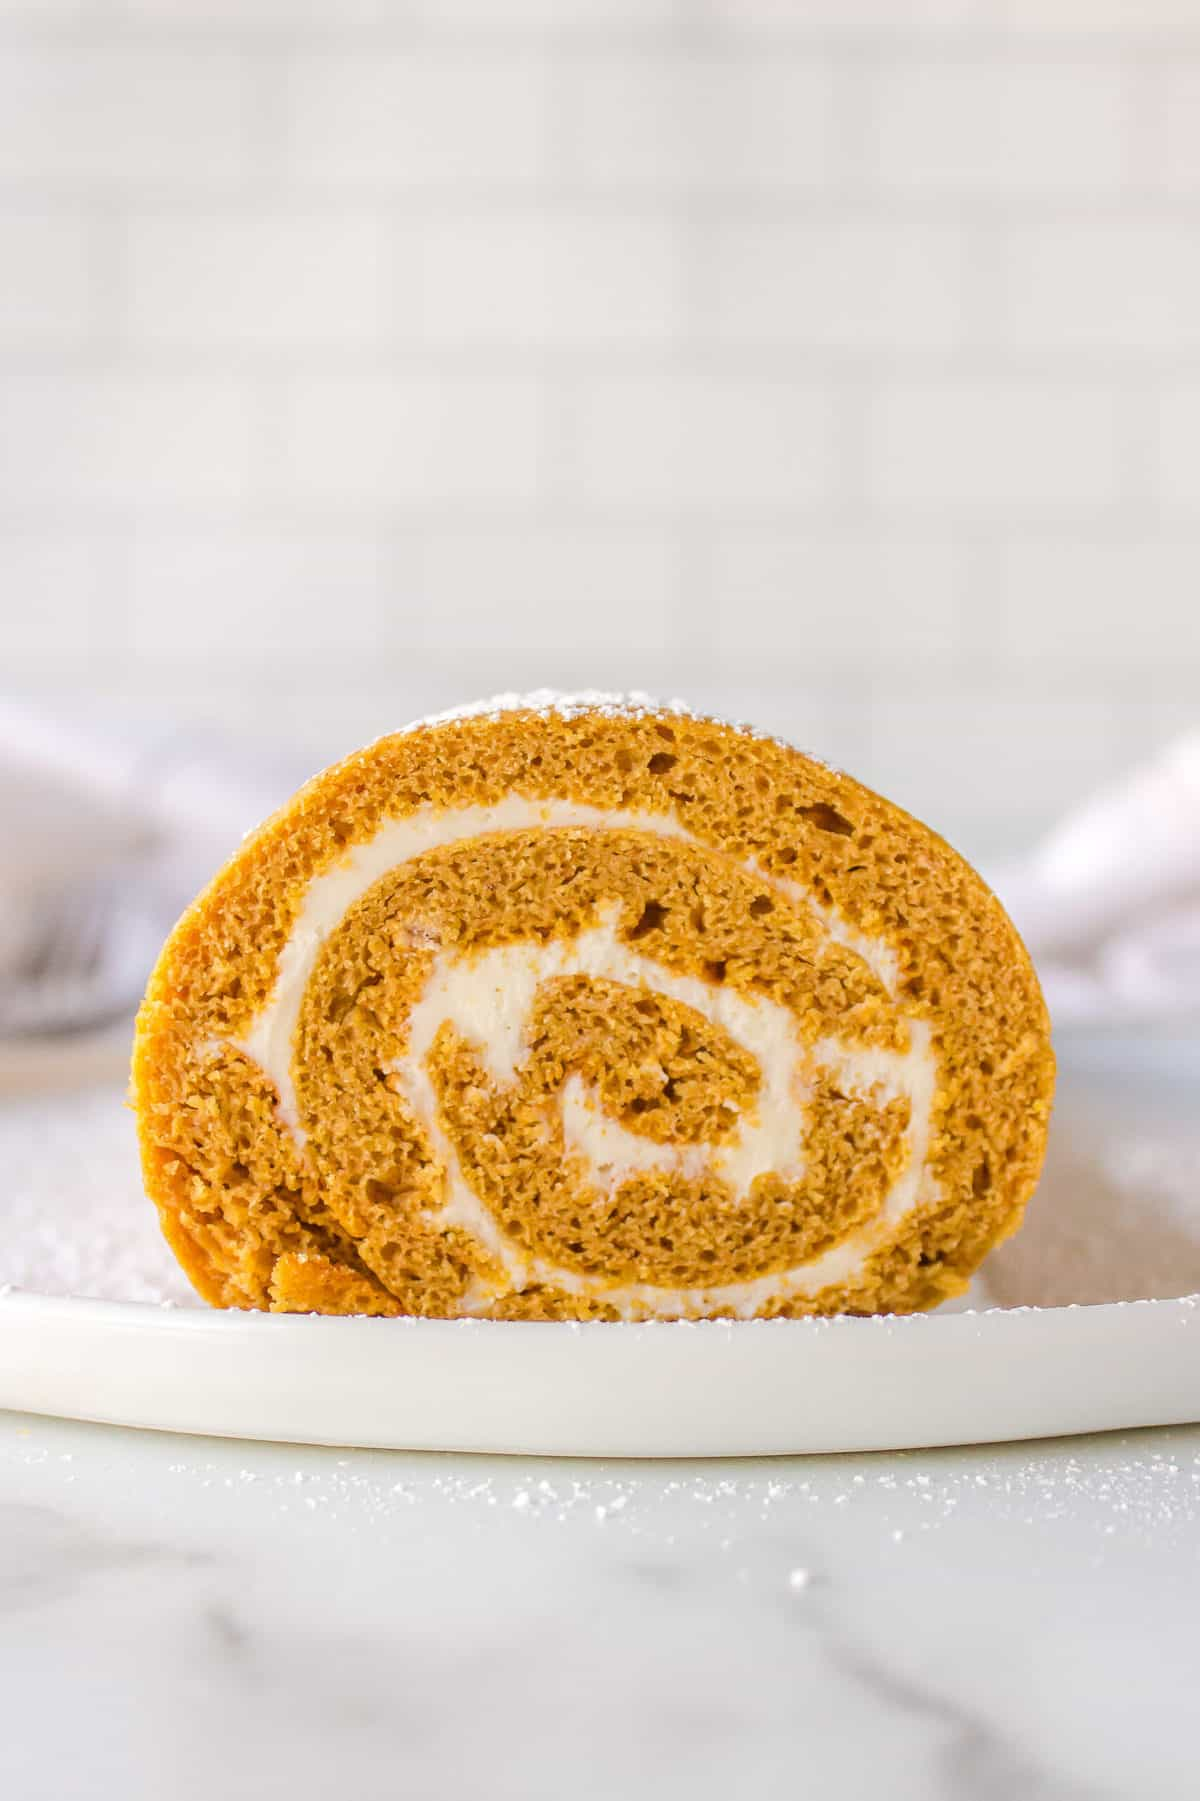 sliced cross section of cake mix pumpkin roll with cream cheese frosting served on a white plate